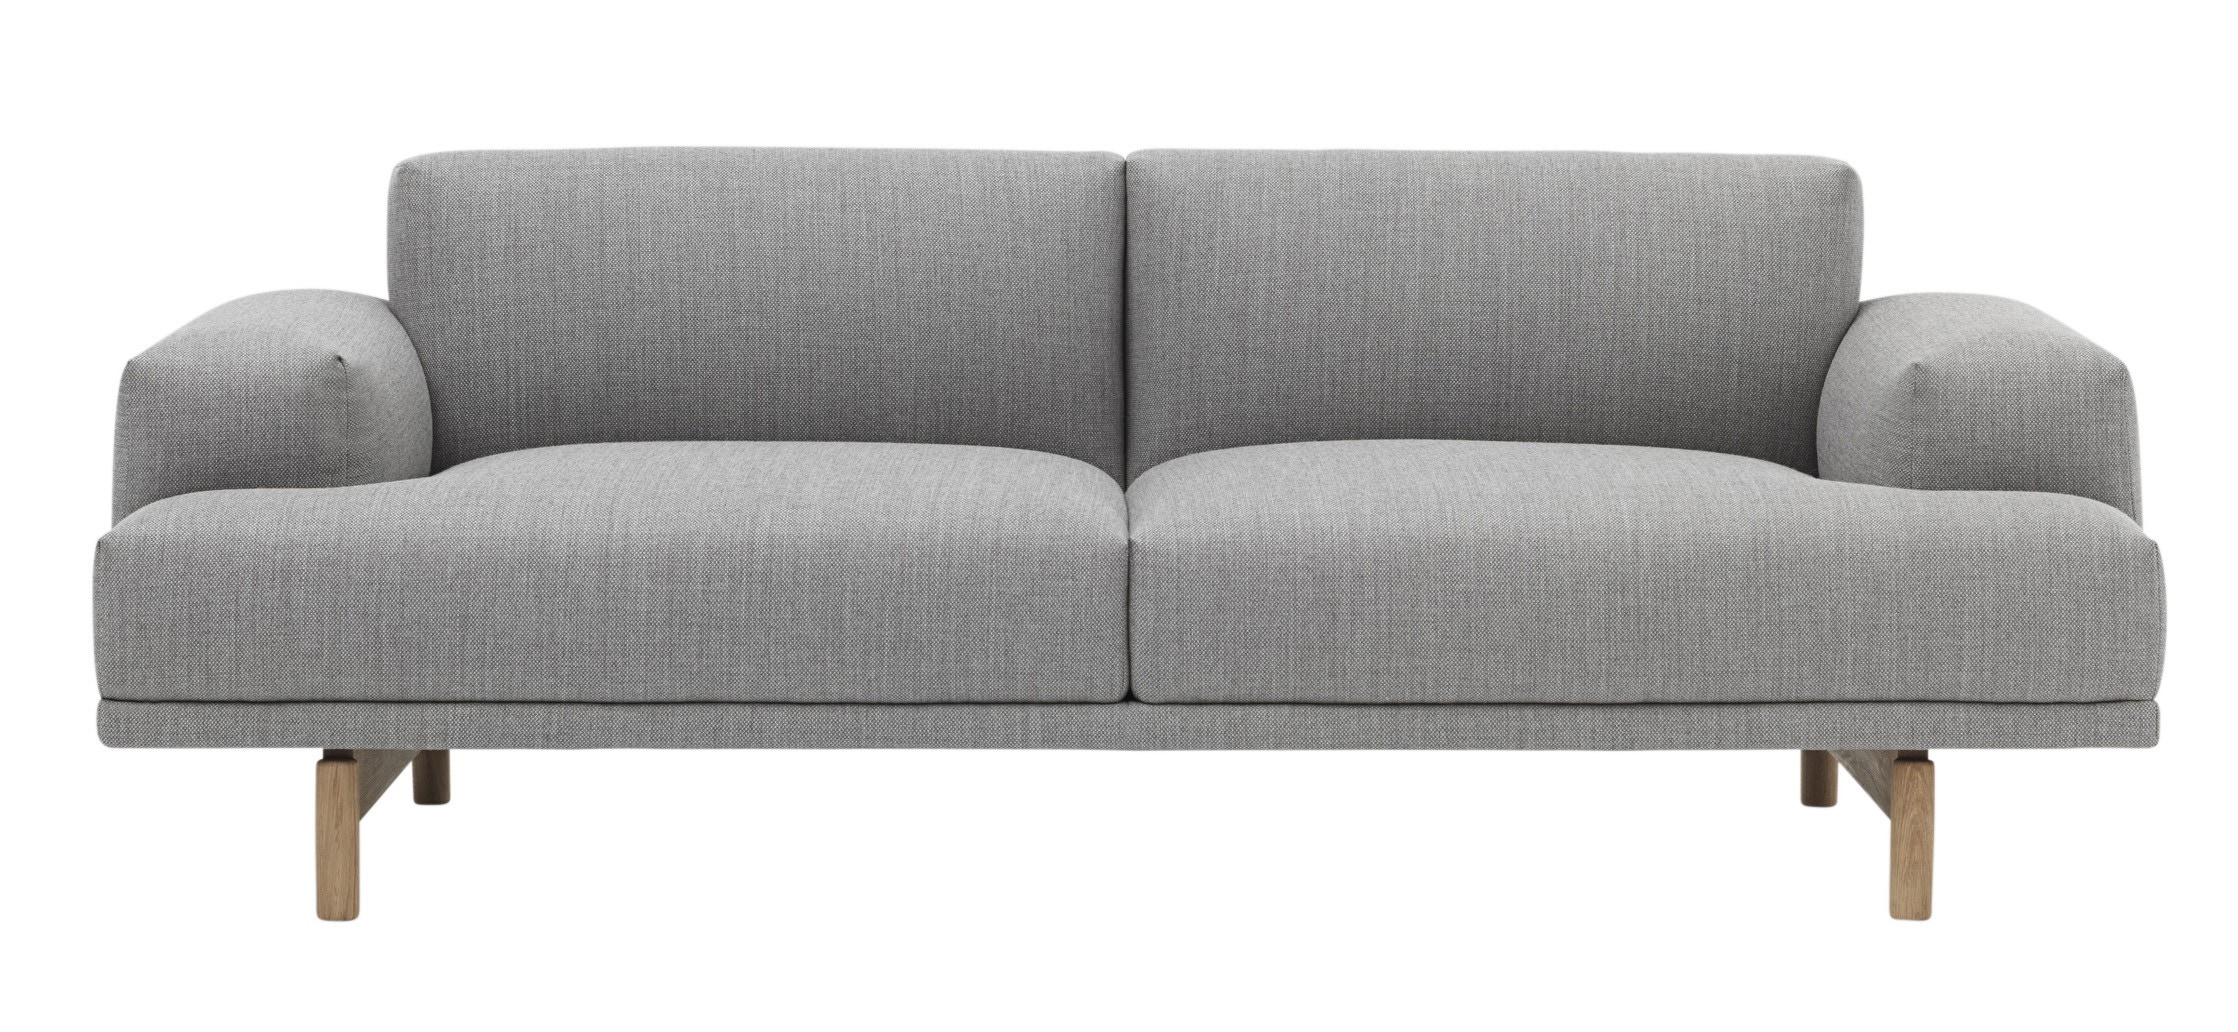 Muuto pose 2 Seater Sofa GR Shop Canada